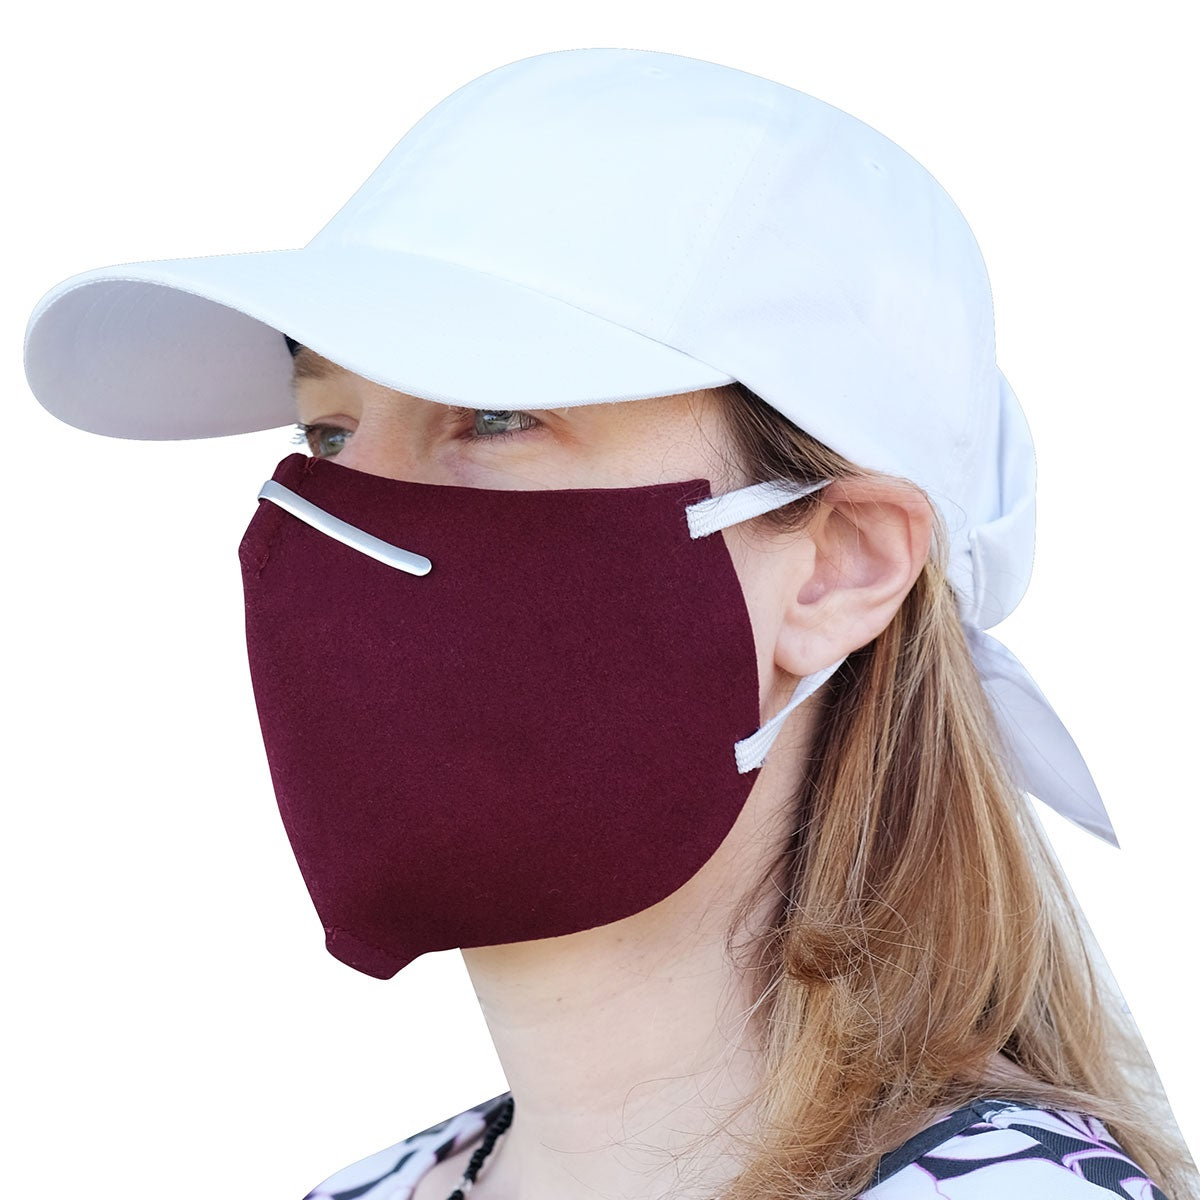 Bollman Hat Company Washed Protective Wool Face Mask - 2 Pack in Assorted